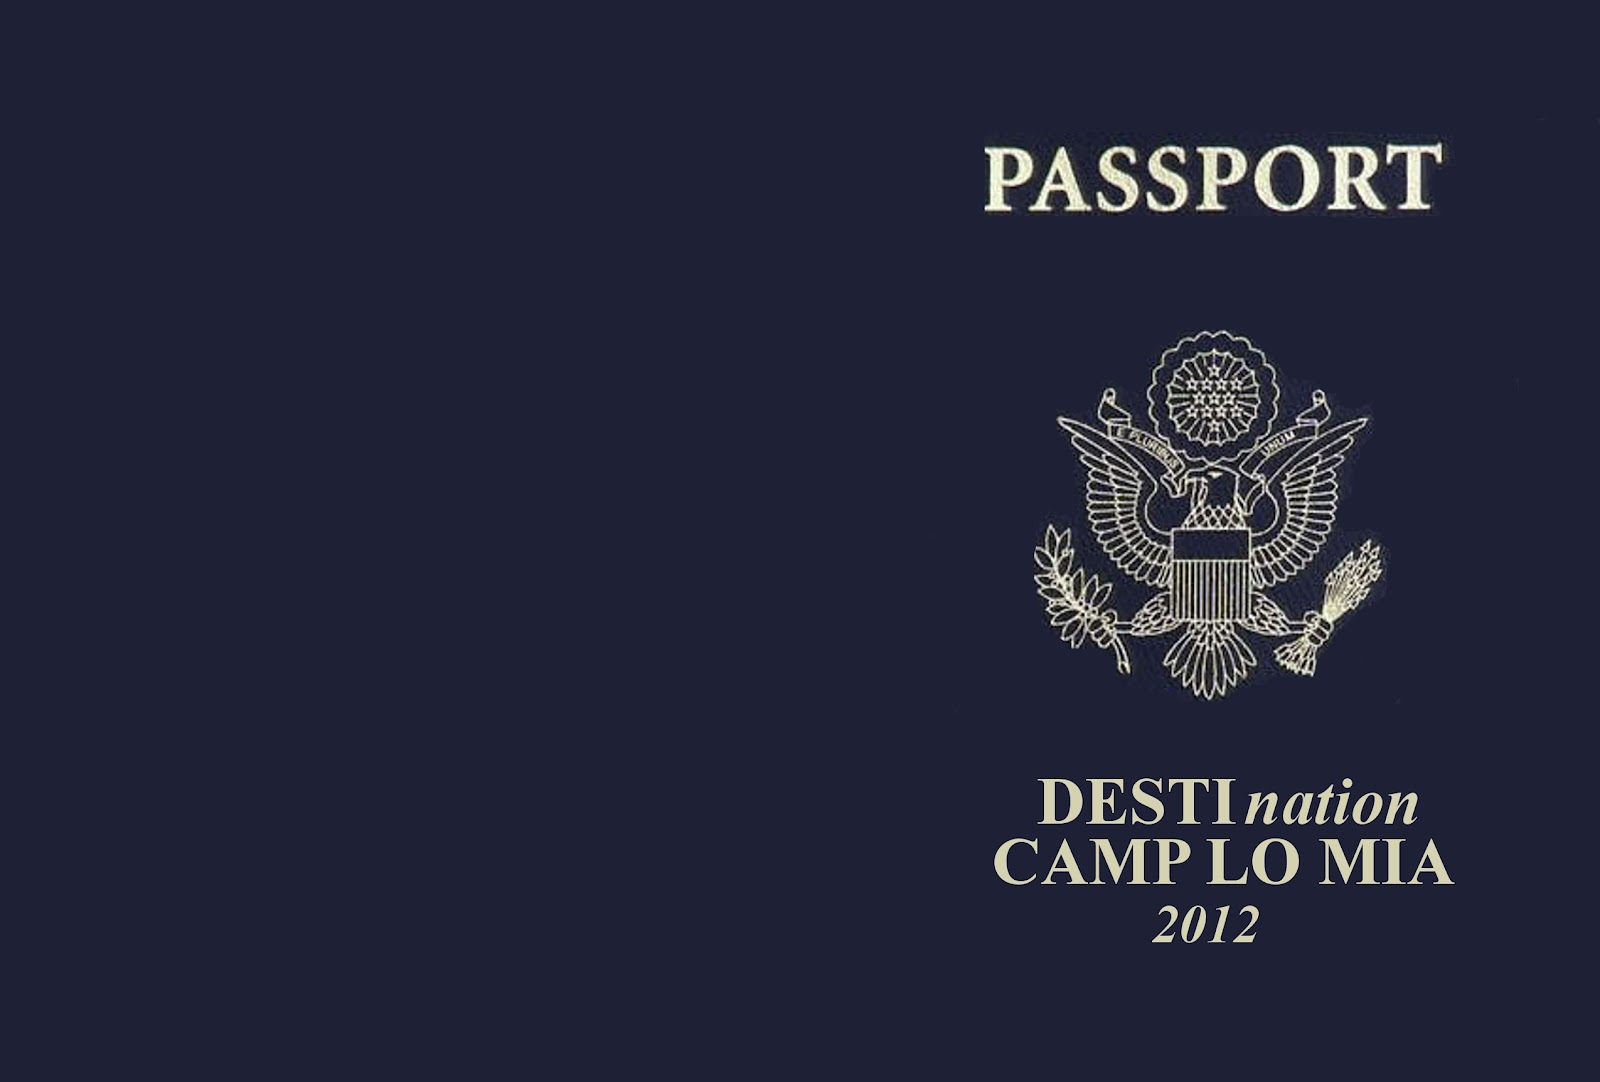 Passport Image Template. cover that look like. blank. photoshop ...